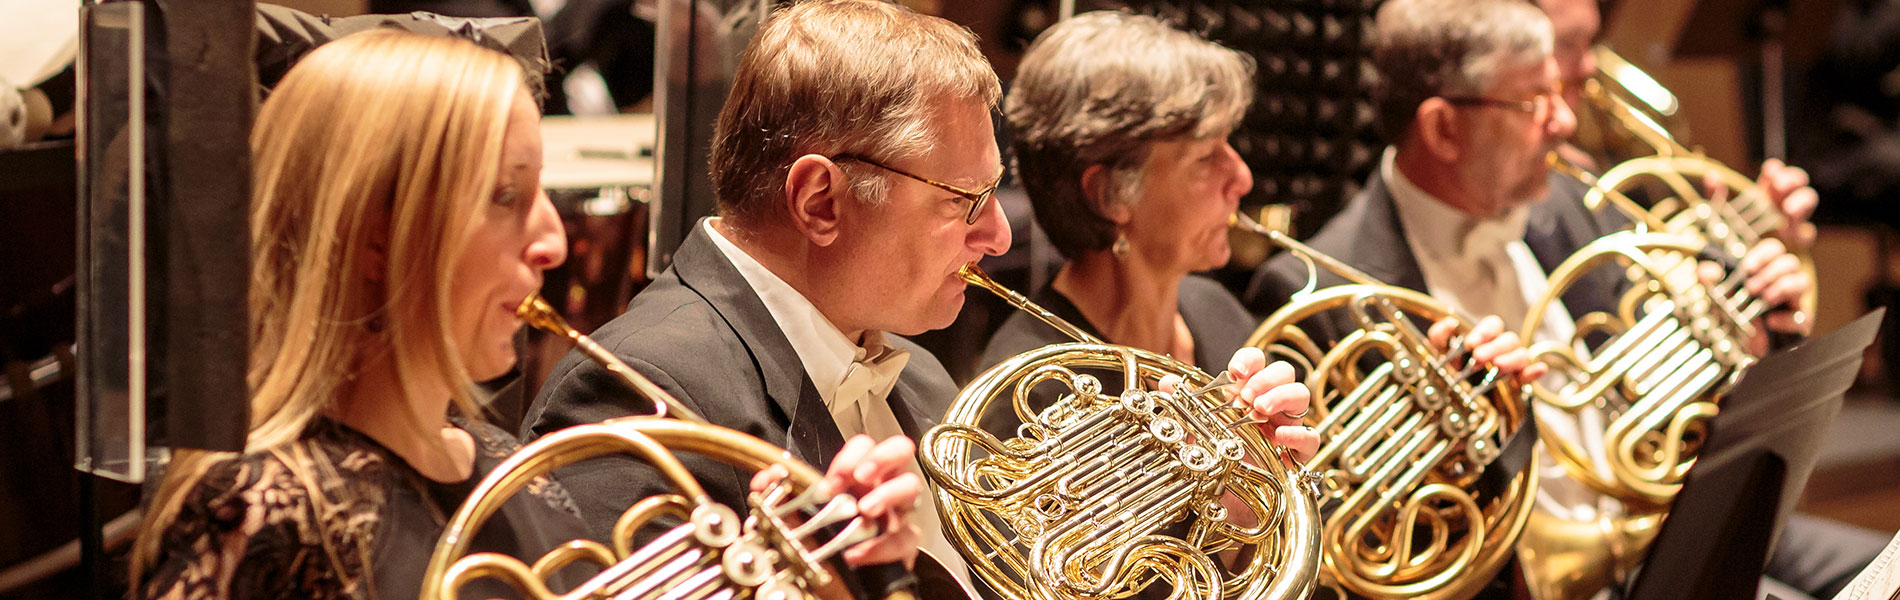 Brass Family of Instruments: What instruments are in the